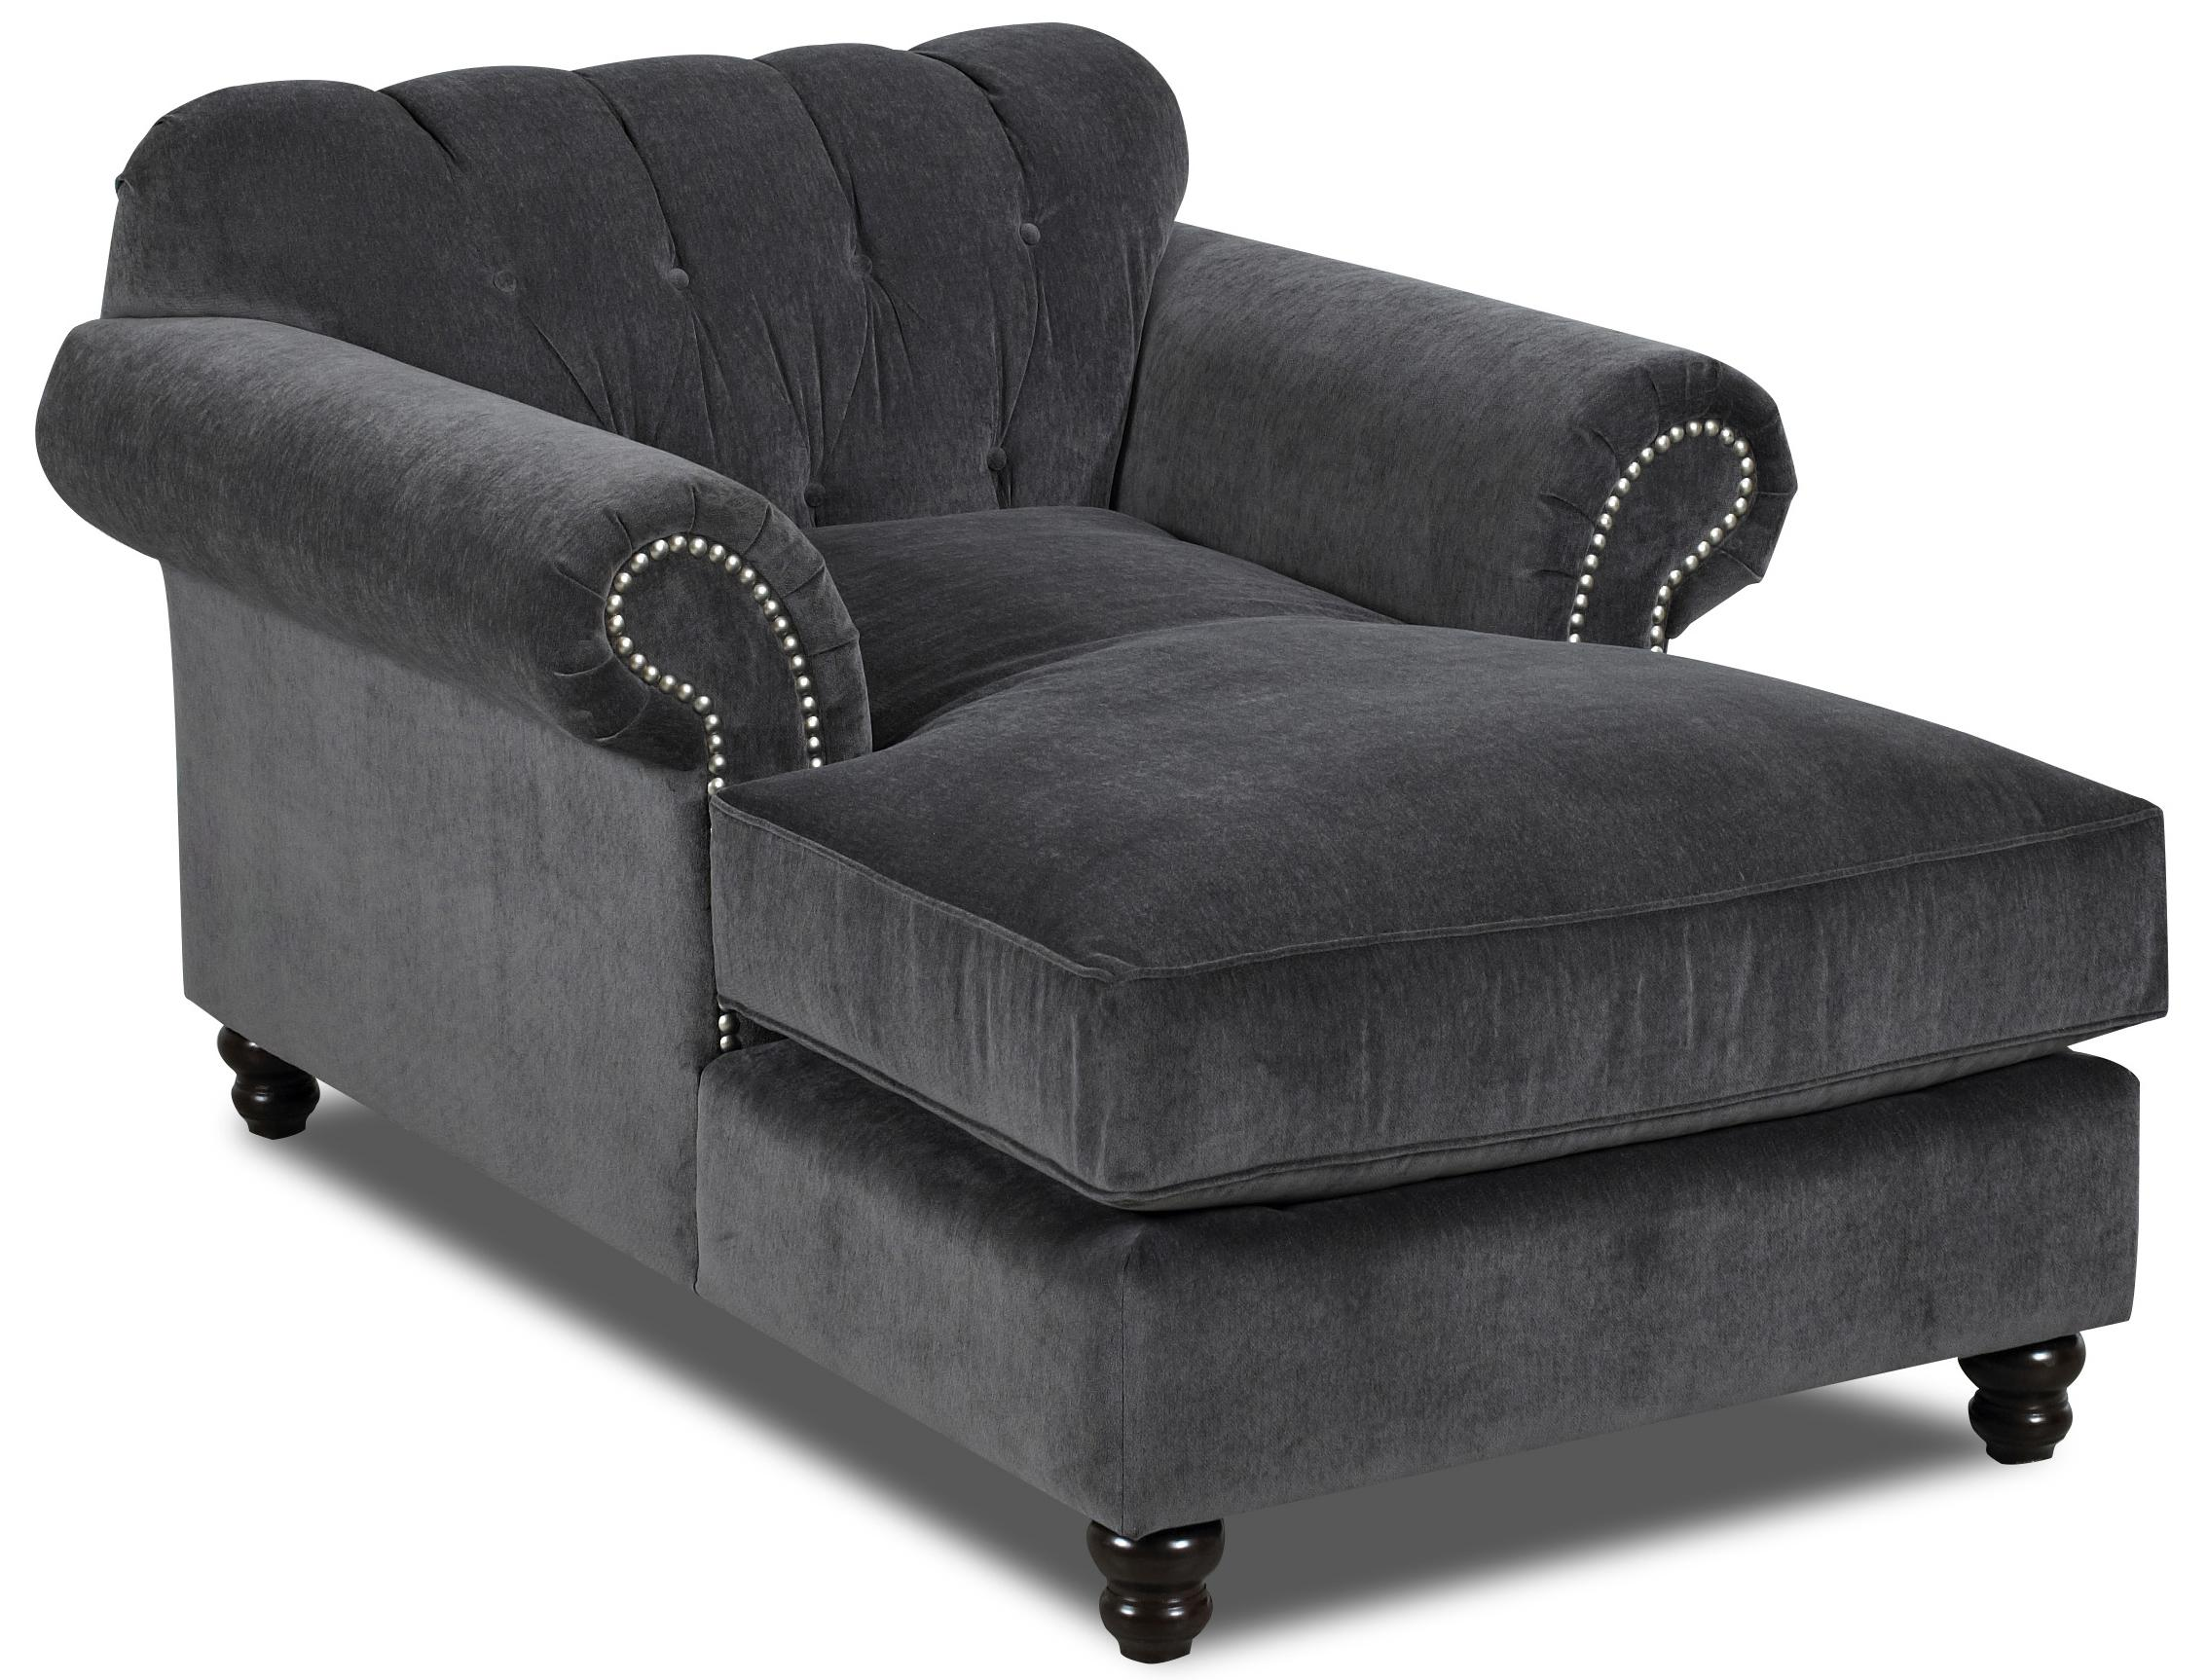 Klaussner flynn traditional chaise with button tufted back for Button tufted chaise settee green